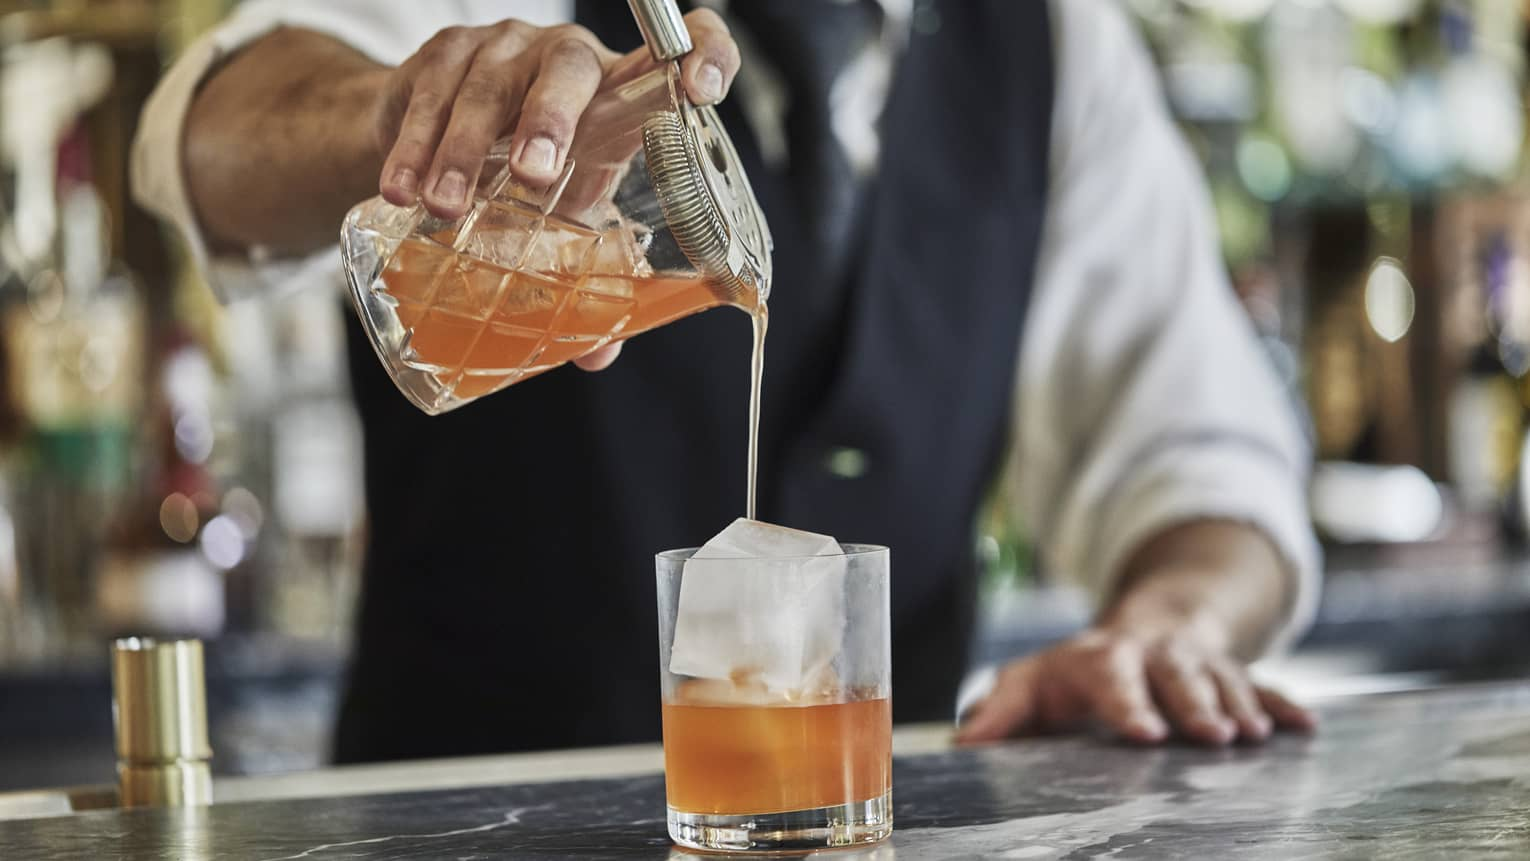 Close-up of bartender pouring orange cocktail from shaker into crystal glass with large ice cube